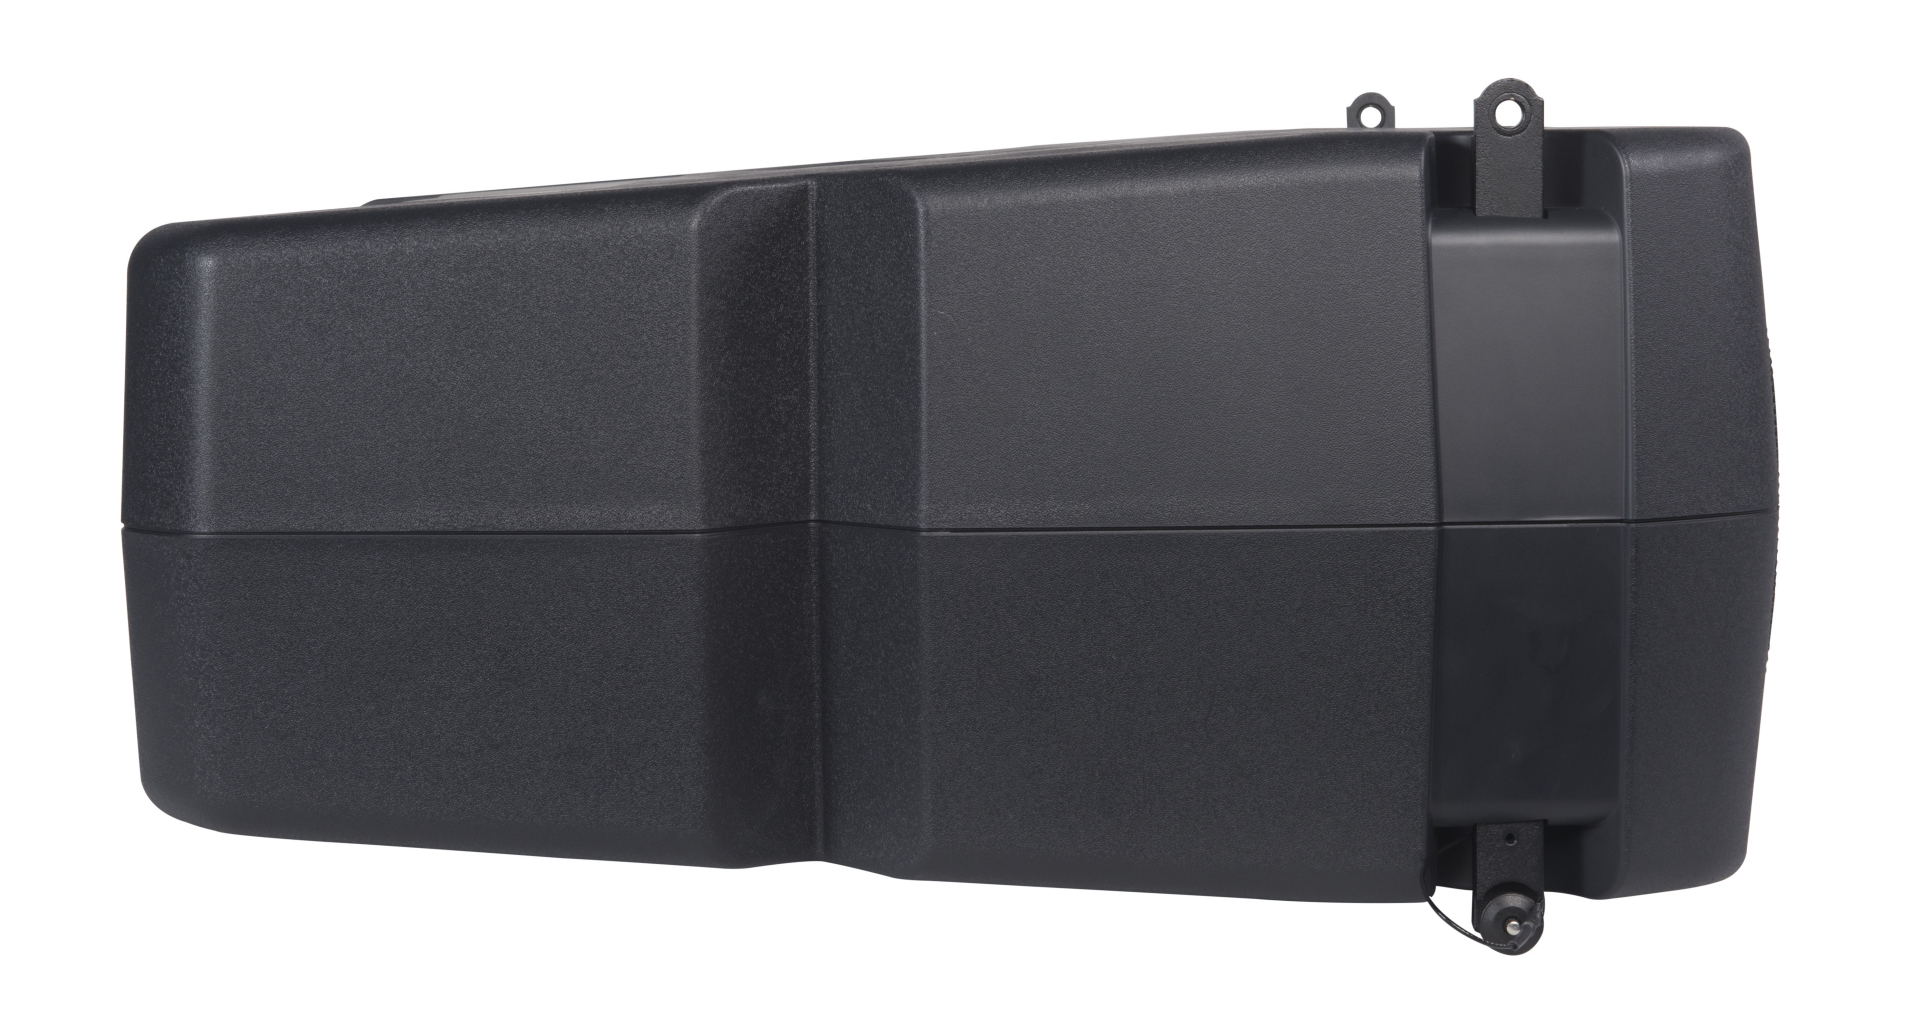 2 x 8 Powered Vertical Array, PP Cabinet, ClassD, SMPS, DSP, 900W+200W, HF 1,4 (2,5 VC)